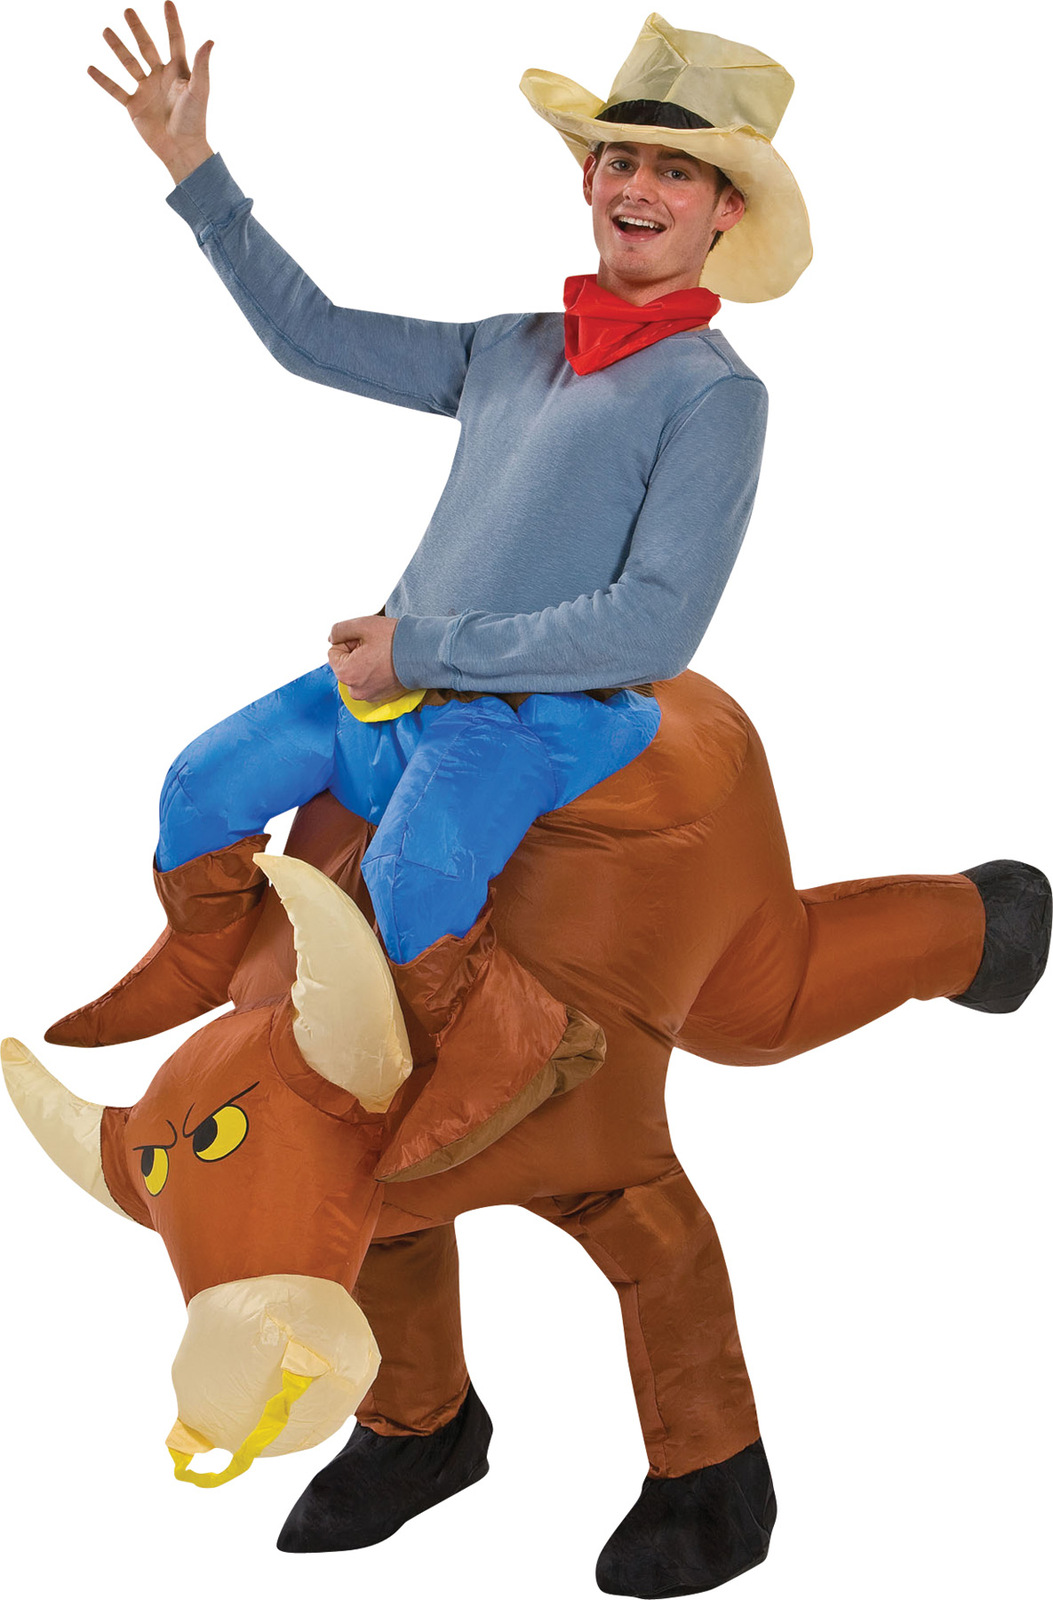 Bull Rider Costume Inflatable Blow-Up Adult Halloween Unique Funny Gag SS24529G